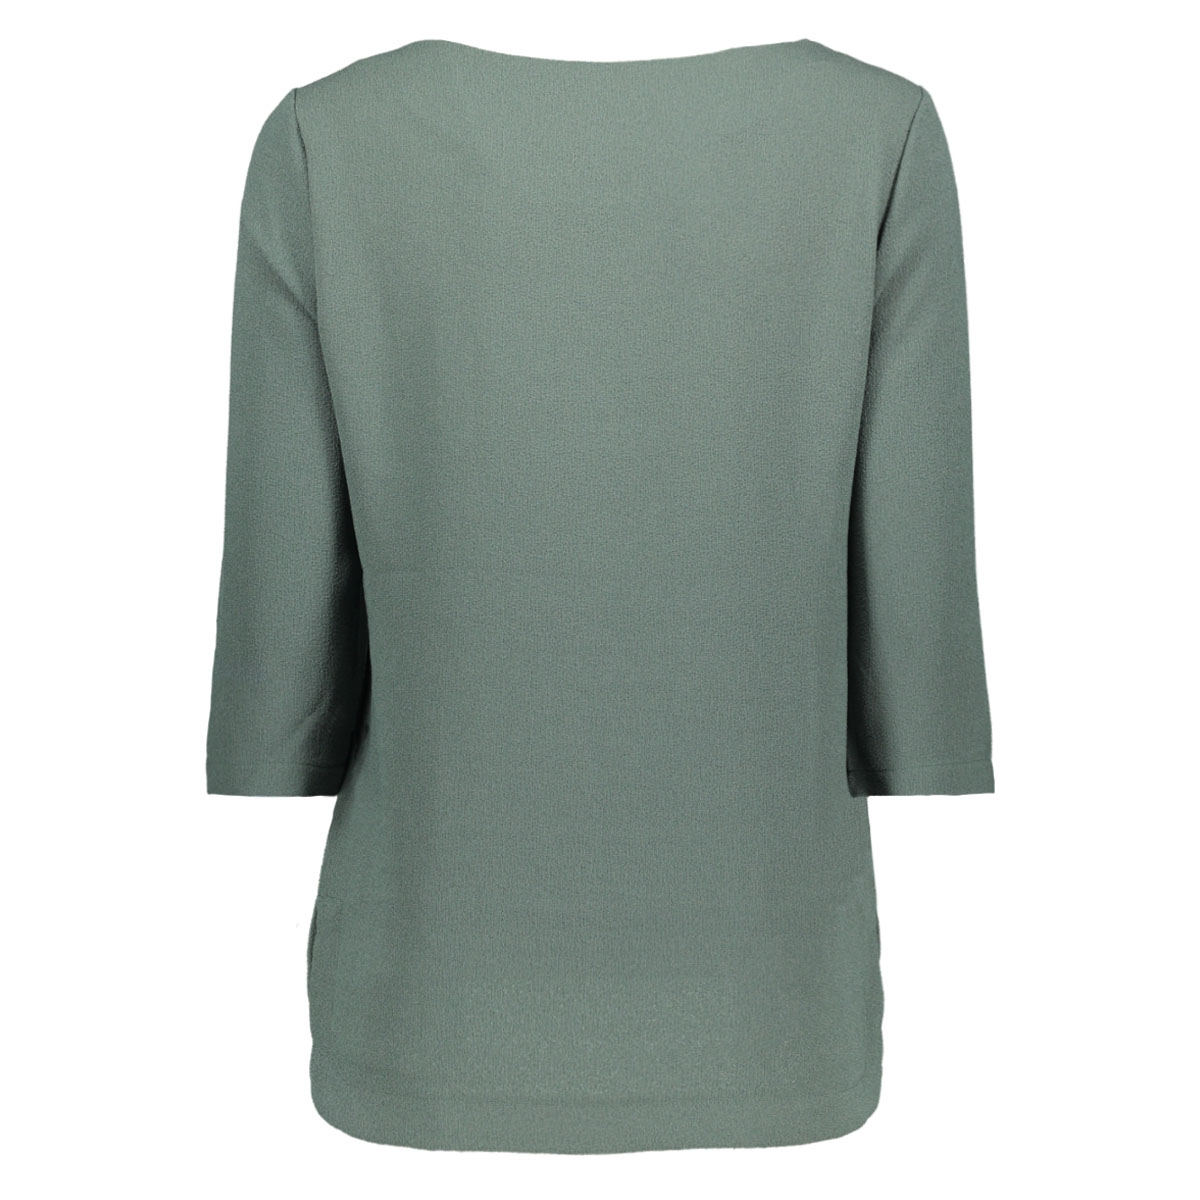 objcorlee 3/4 top noos 23024282 object t-shirt balsam green